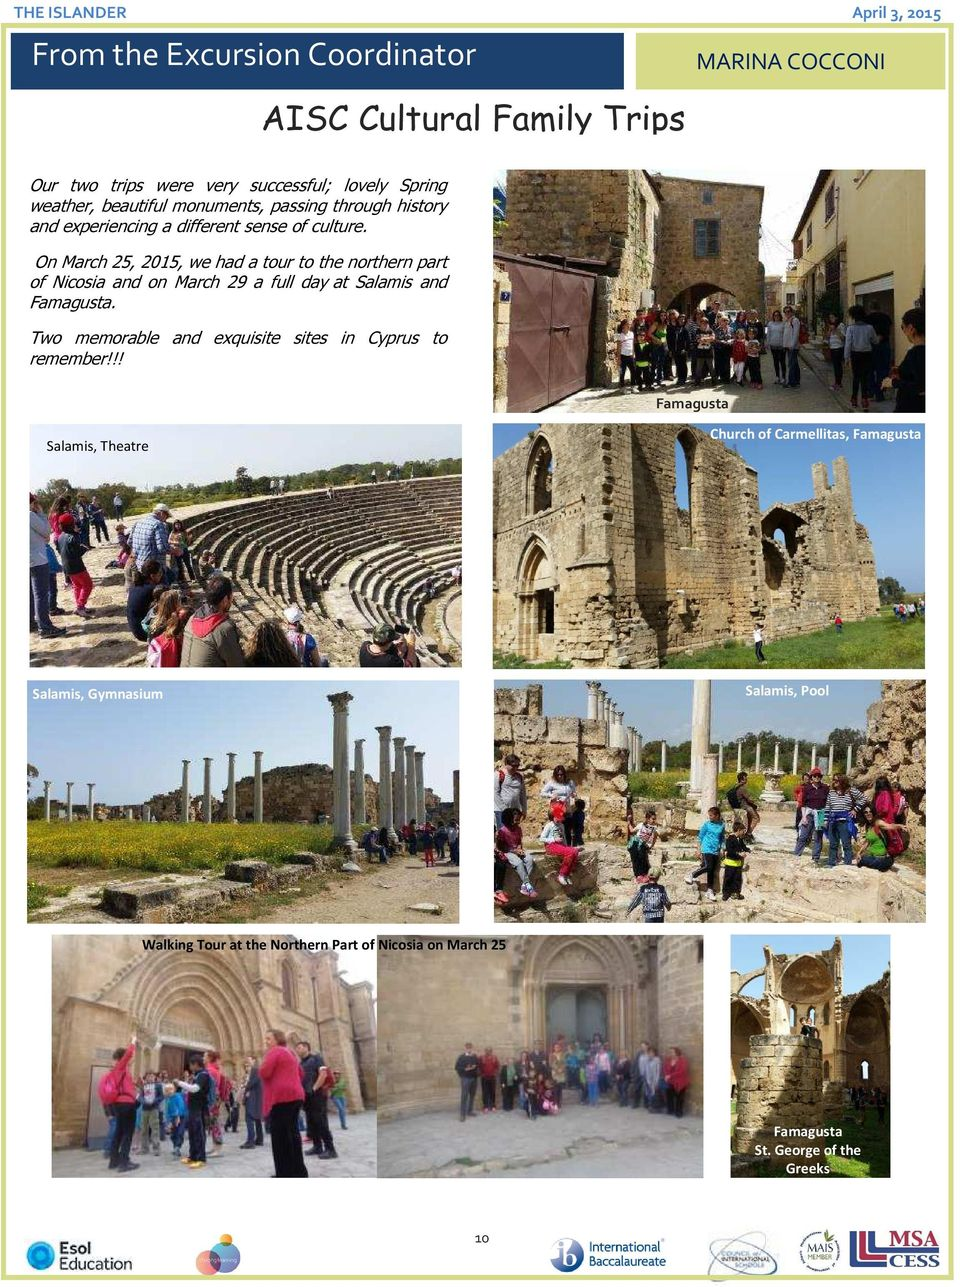 On March 25, 2015, we had a tour to the northern part of Nicosia and on March 29 a full day at Salamis and Famagusta.